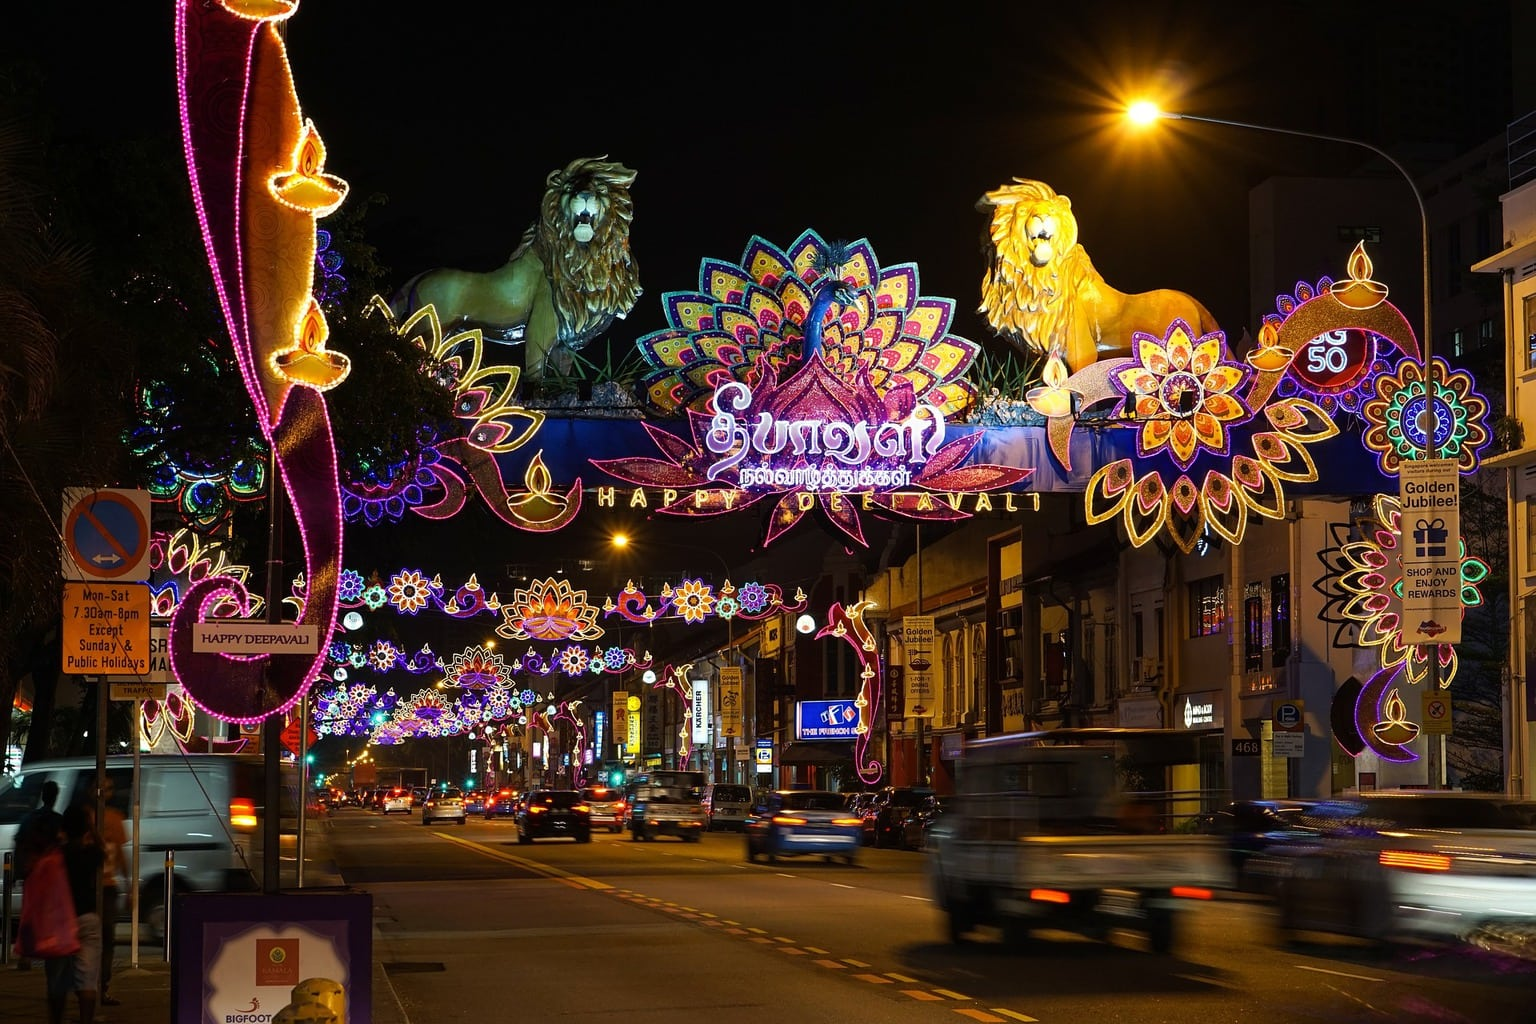 Lights in Little India